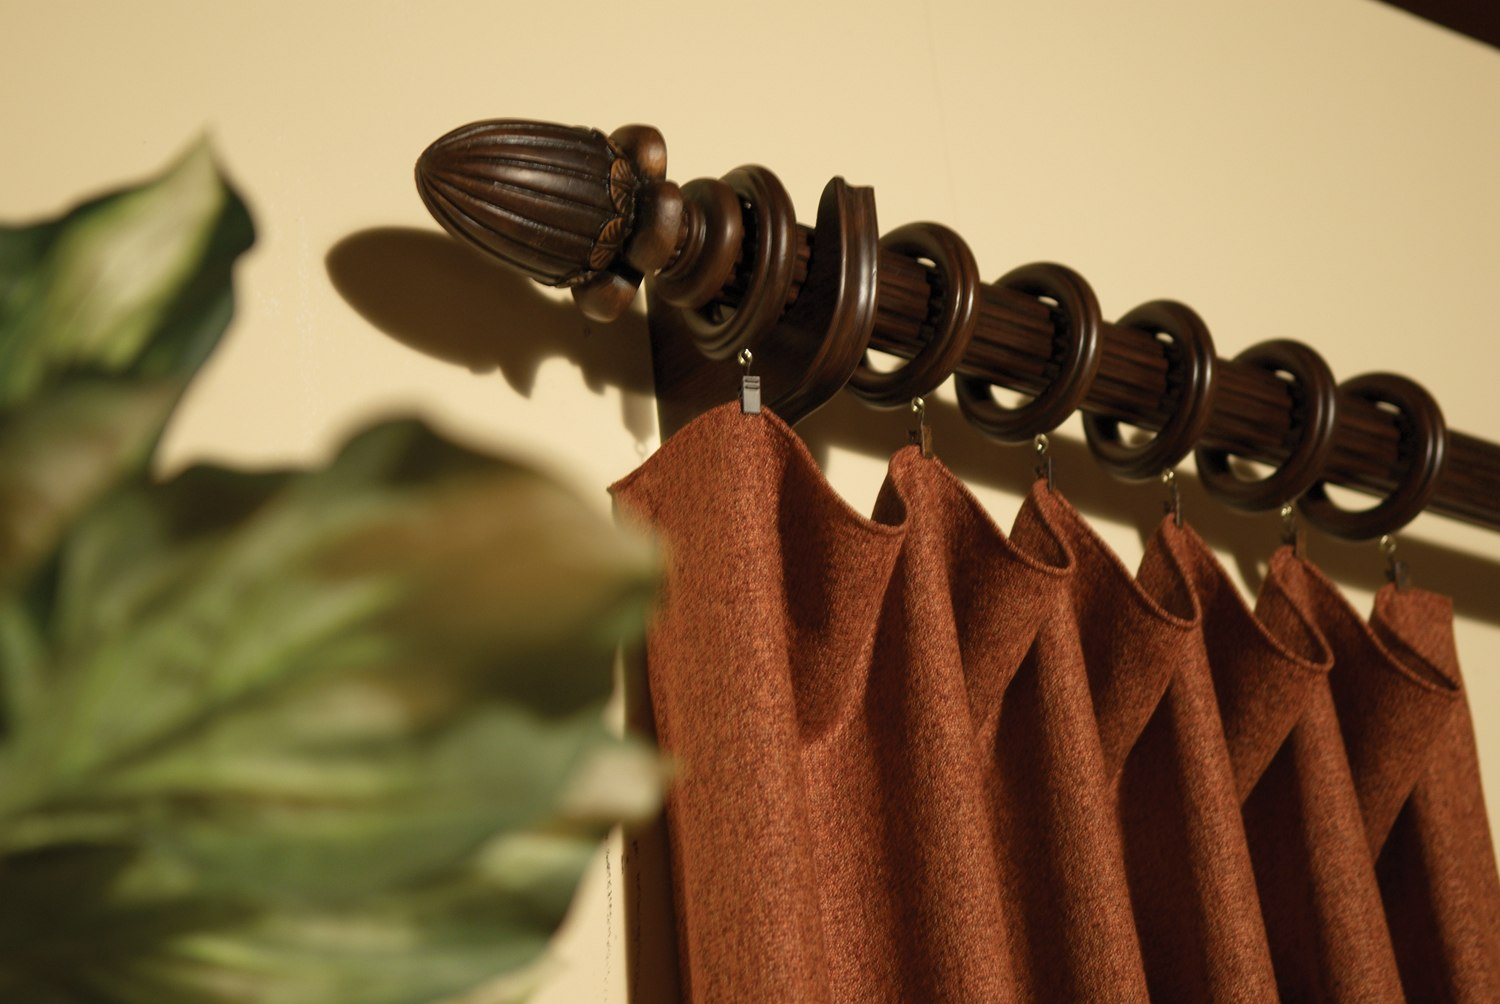 flowing drapery - Decorative Curtain Rods